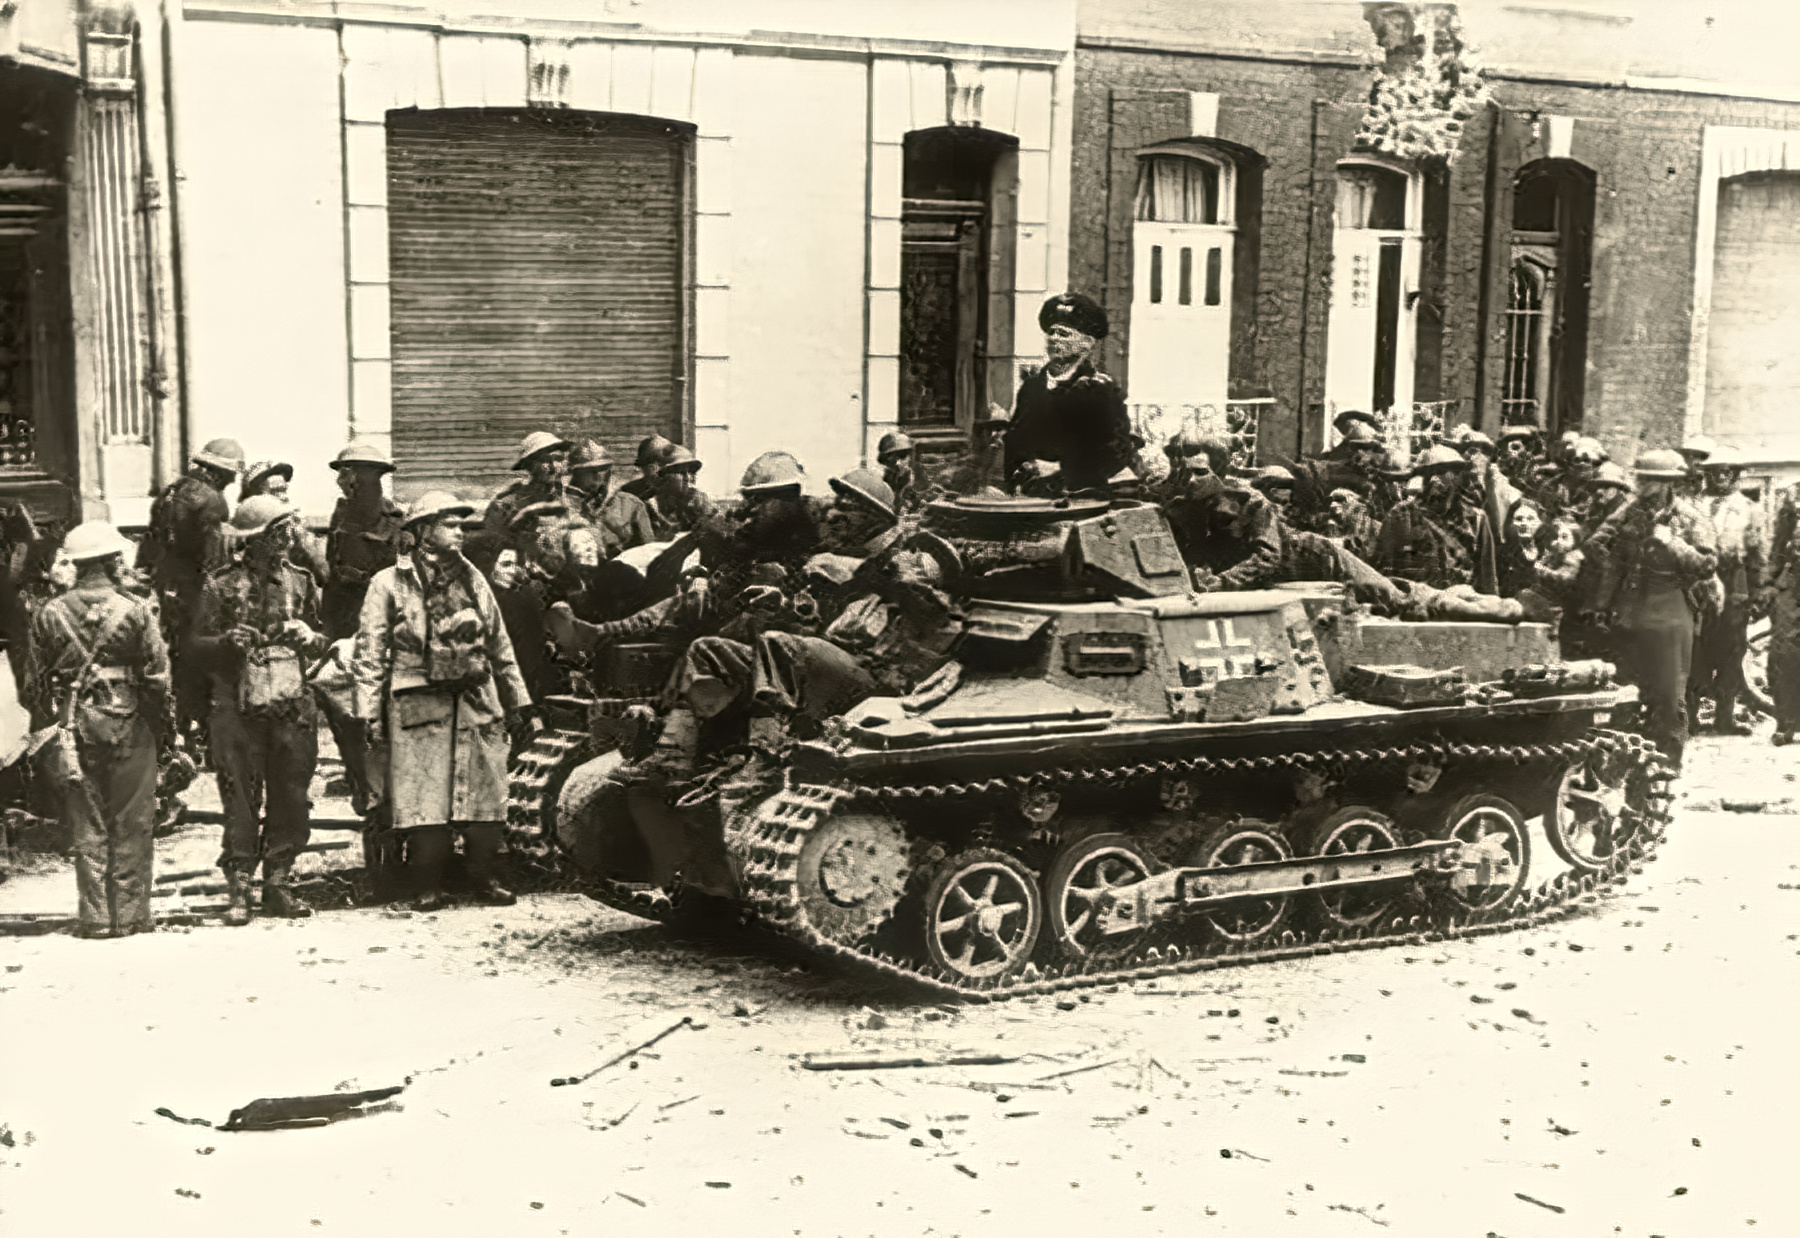 Wehrmacht Panzer I Ausf.B PzKpfw 1 with British POWs Calais France May 1940 wiki 01